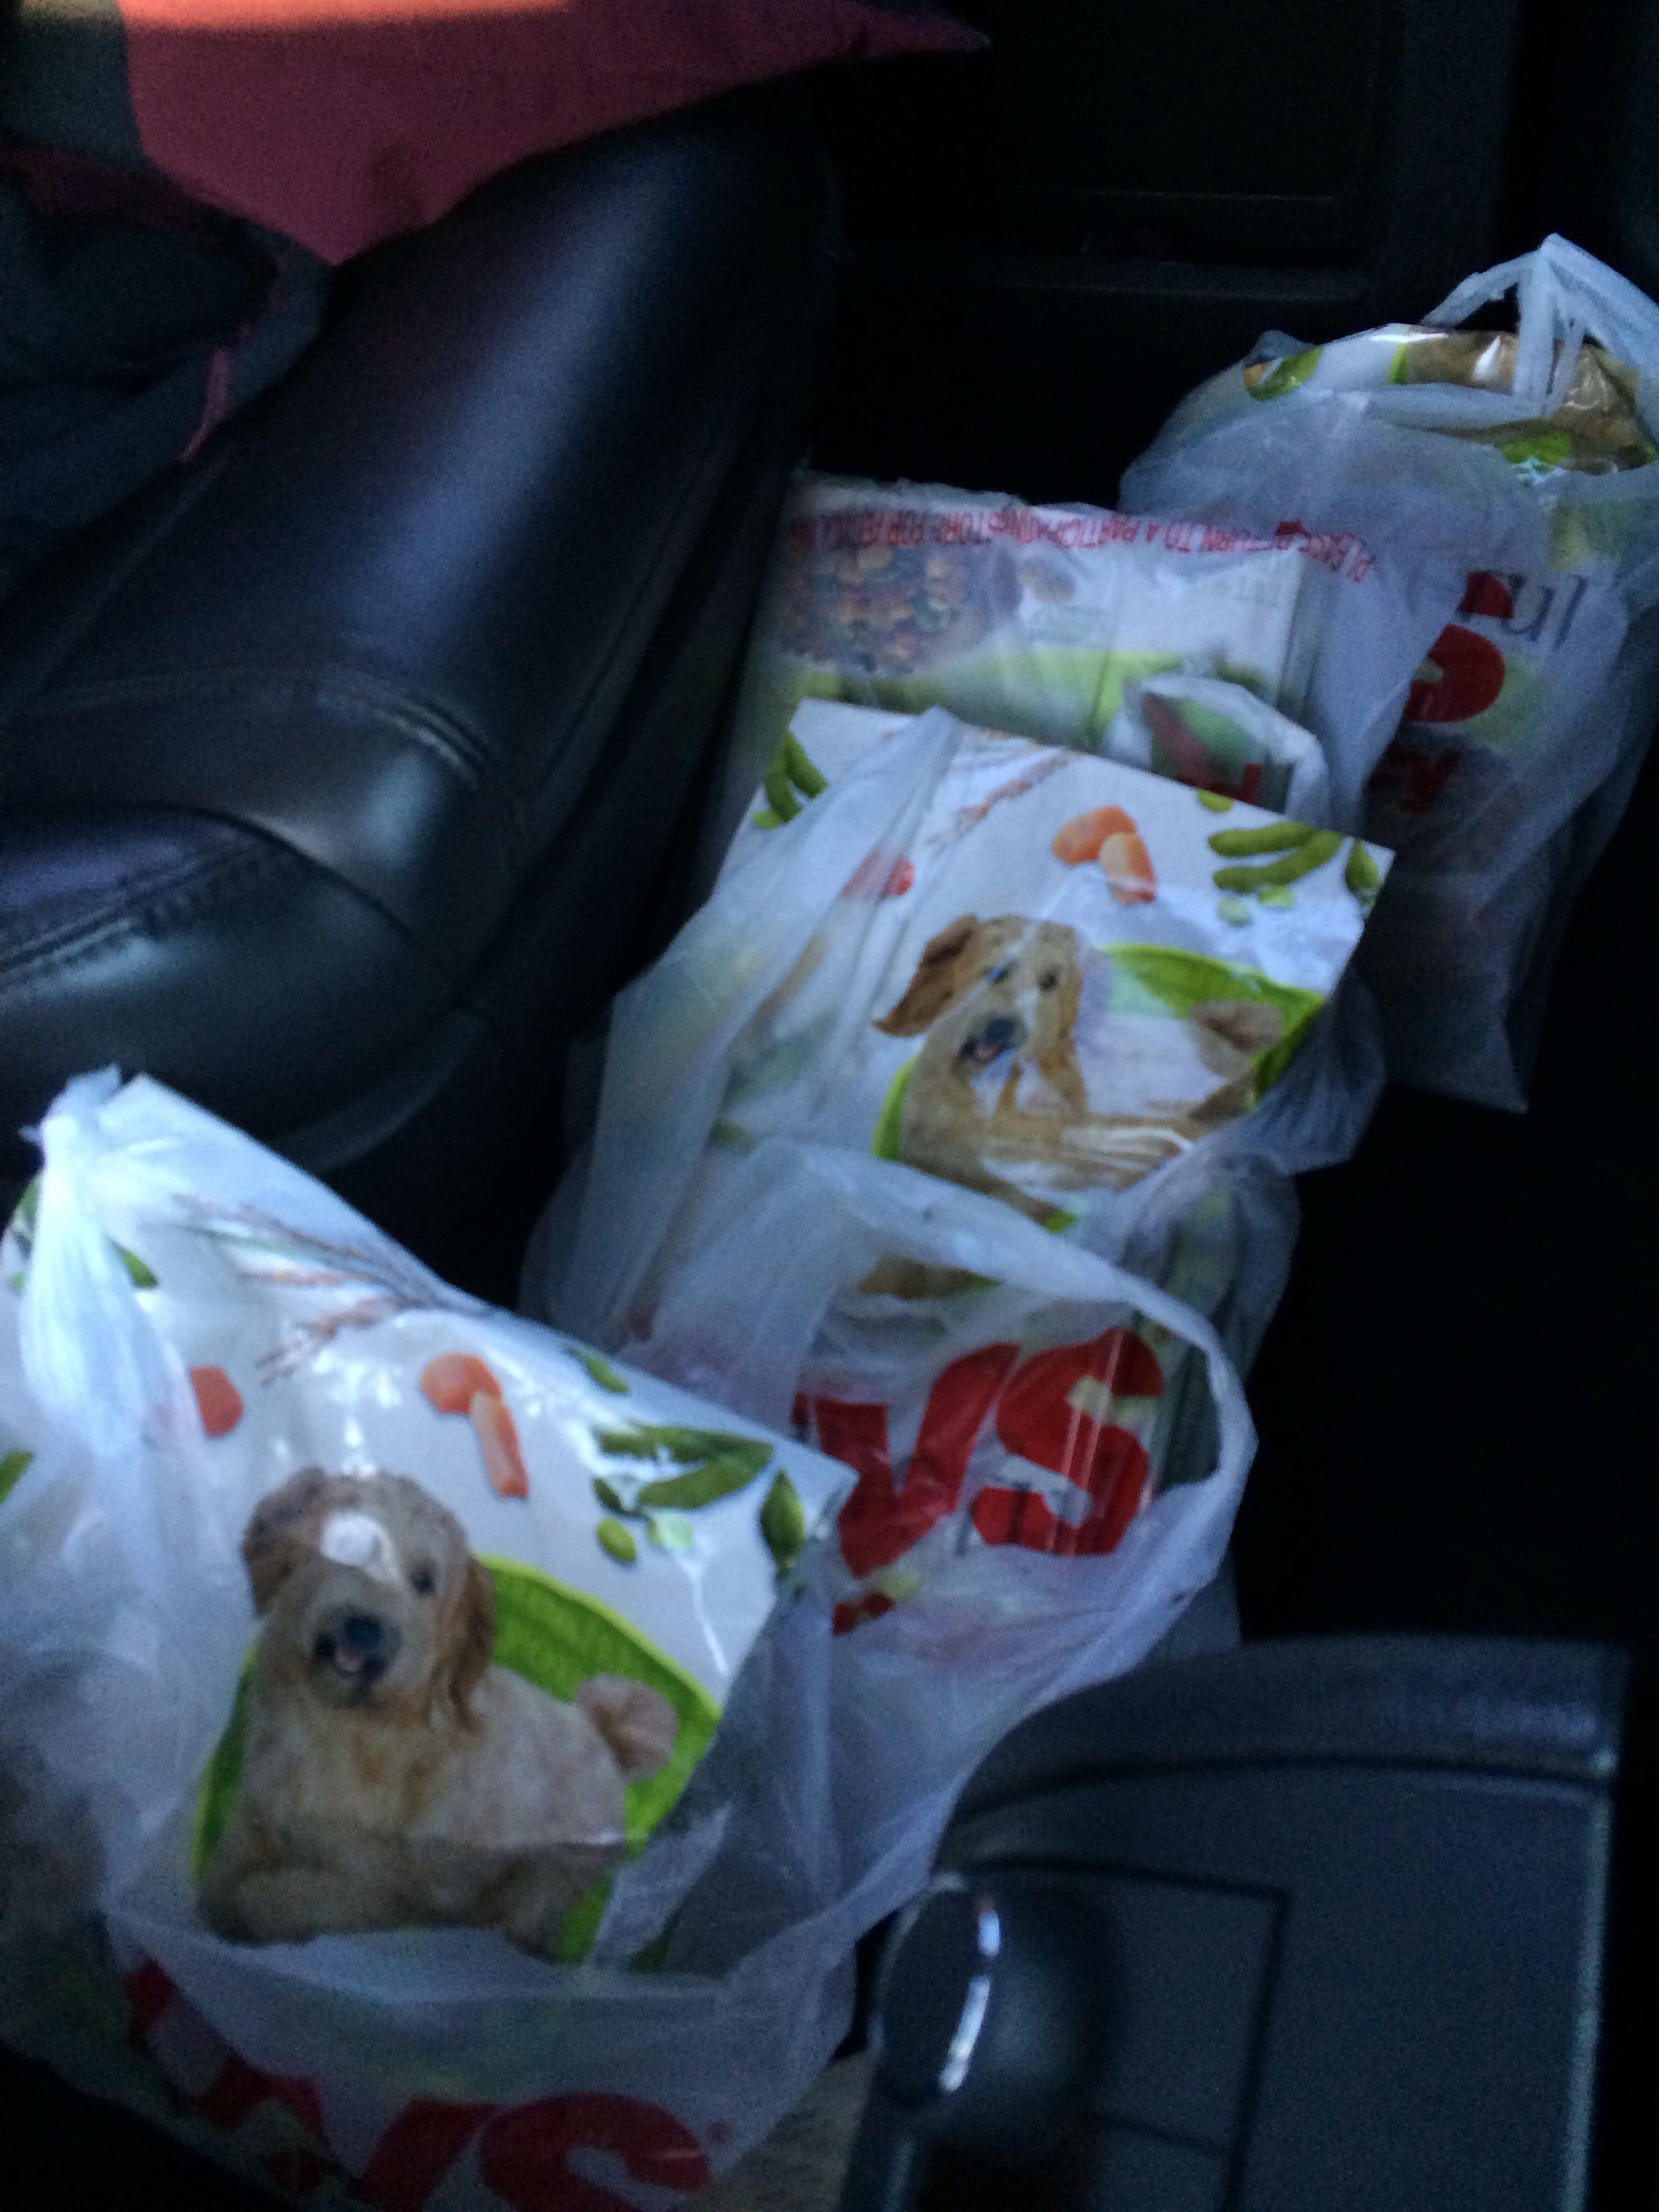 BOGO deal..CVS had this dog food for $5 so I grabbed 4 paying for only 2..;-)